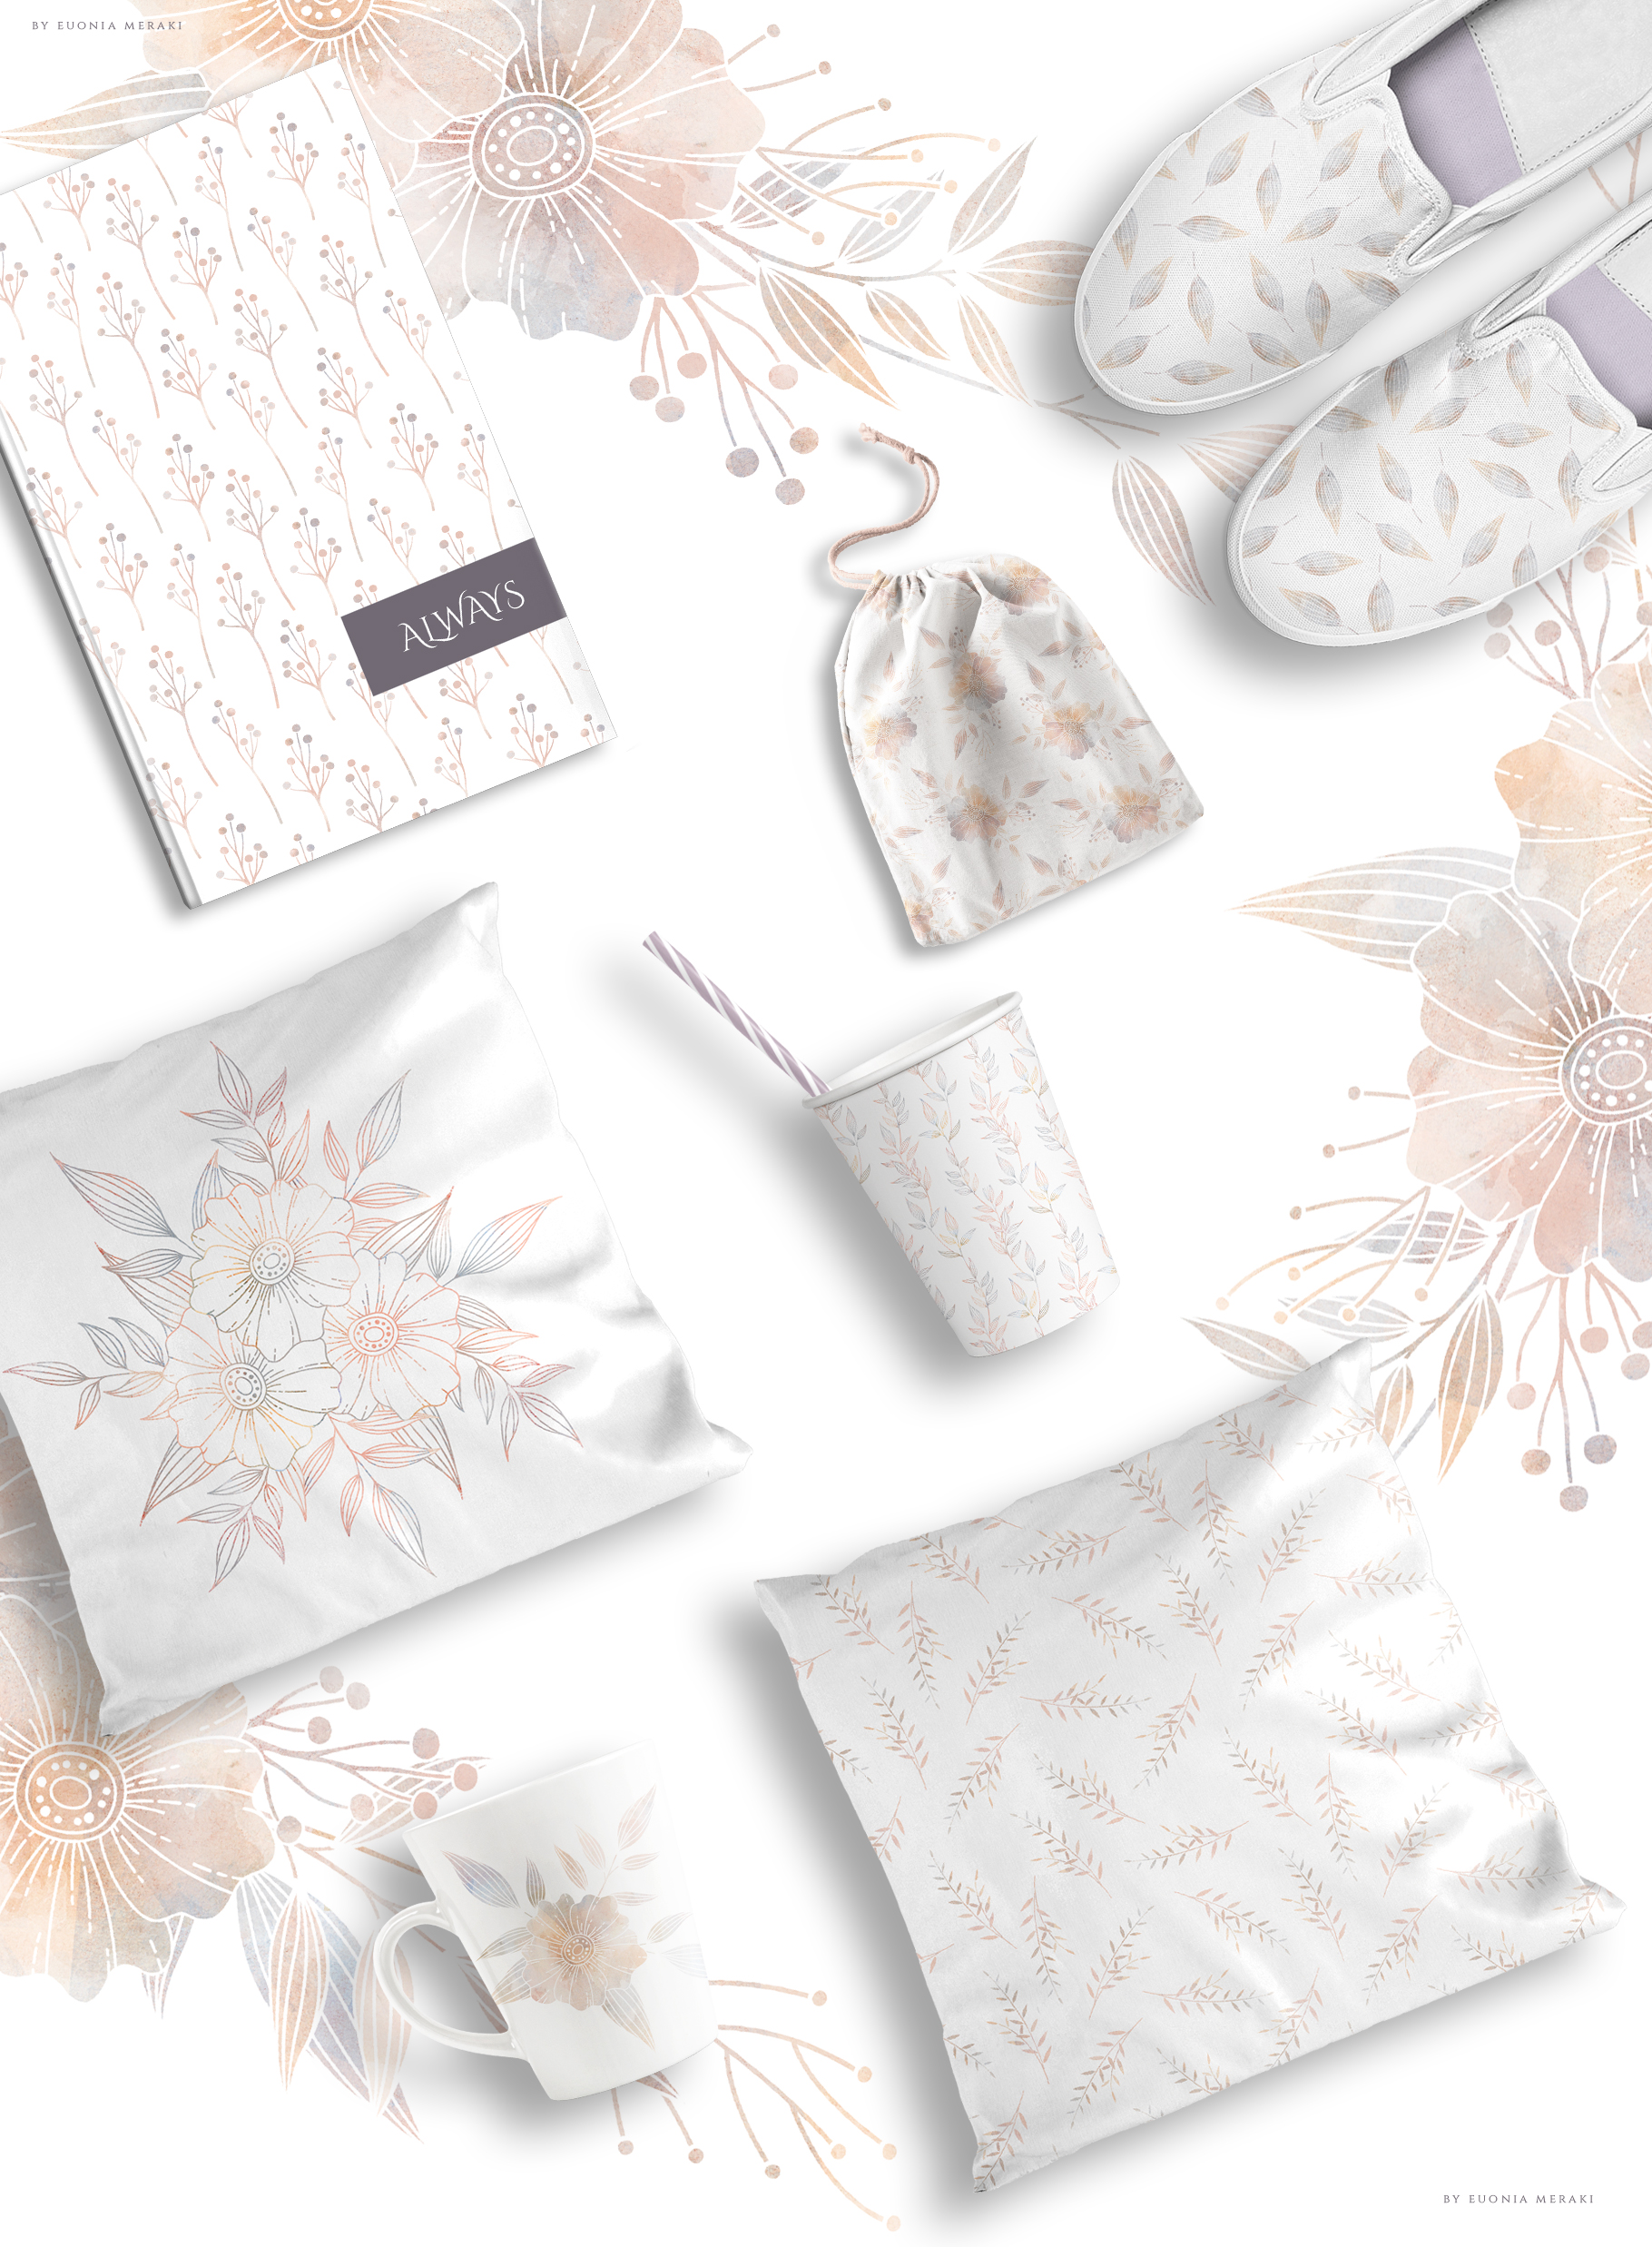 MISTY Dusty Floral Graphics and Monograms example image 14